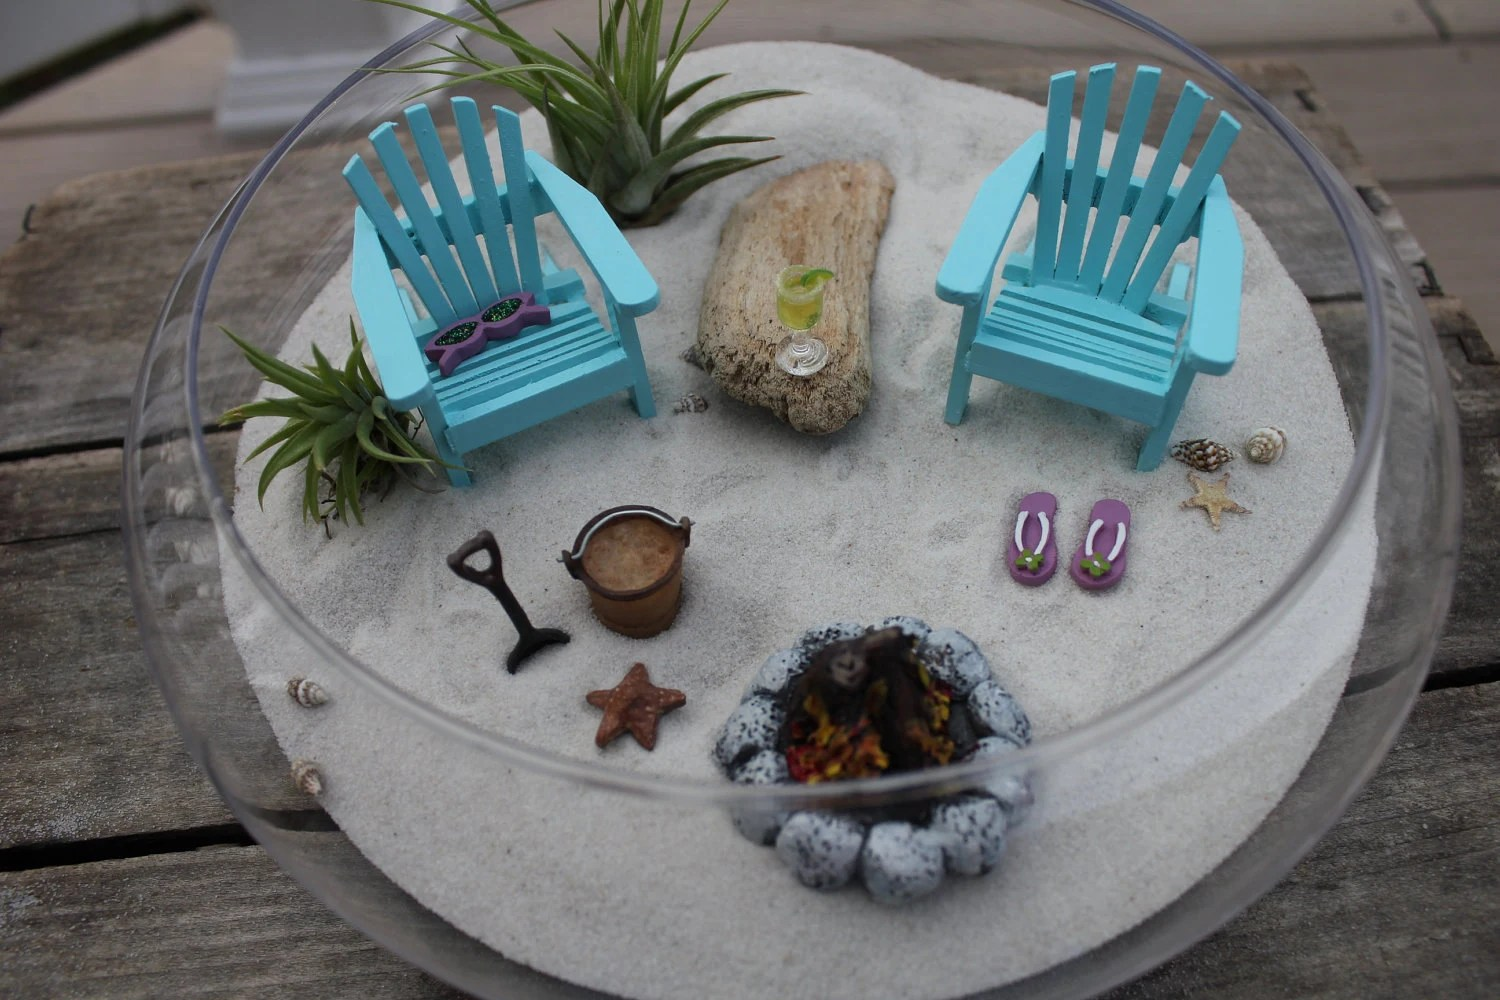 miniature adirondack chairs church for sale beach vacation with a campfire by landscapesnminiature